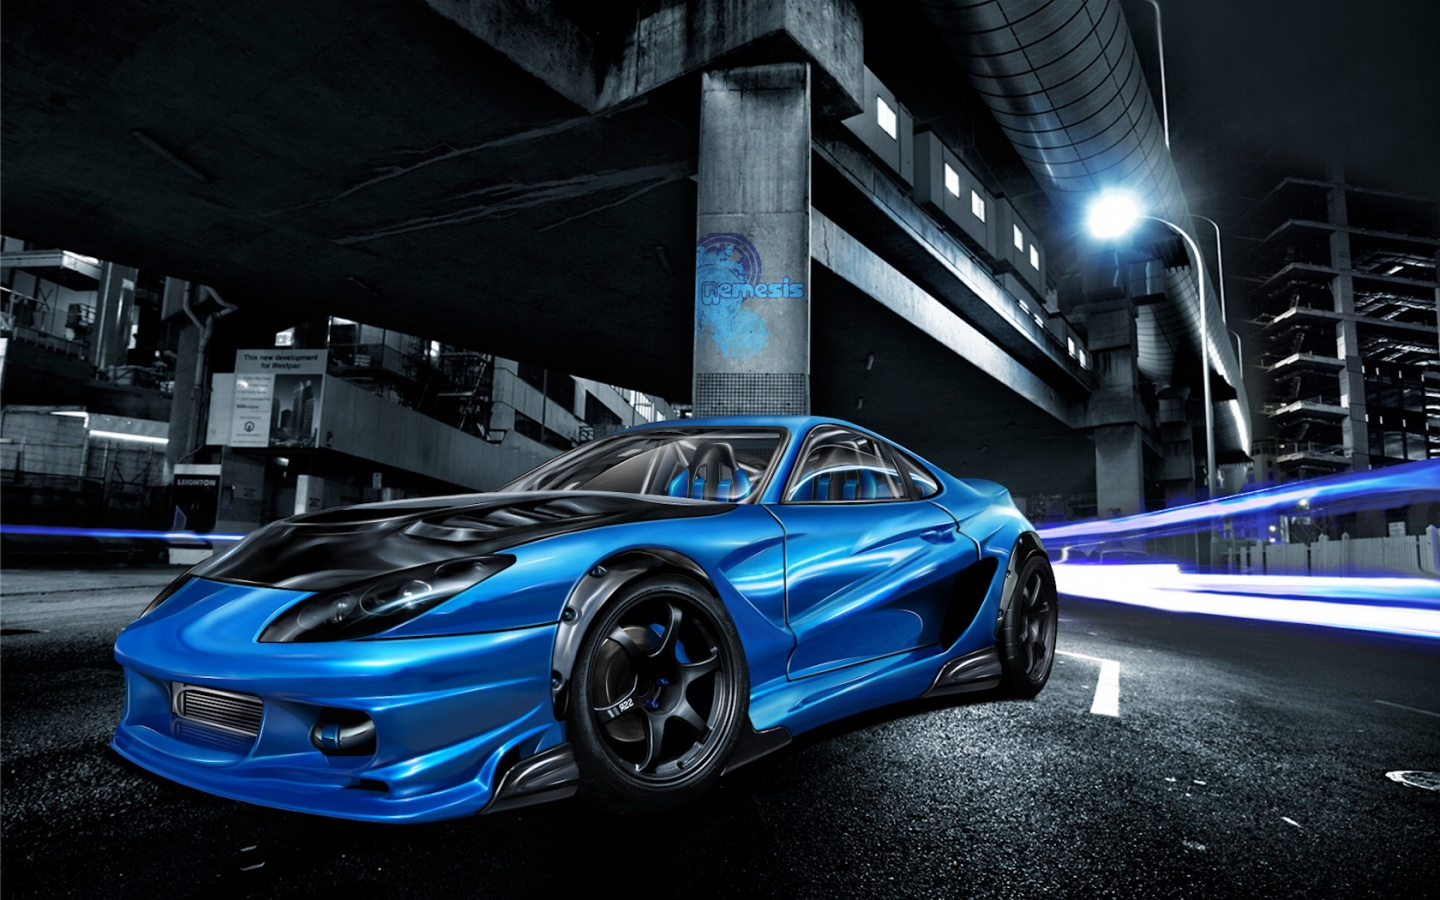 Street Race Car Wallpapers In Jpg Format For Free Download